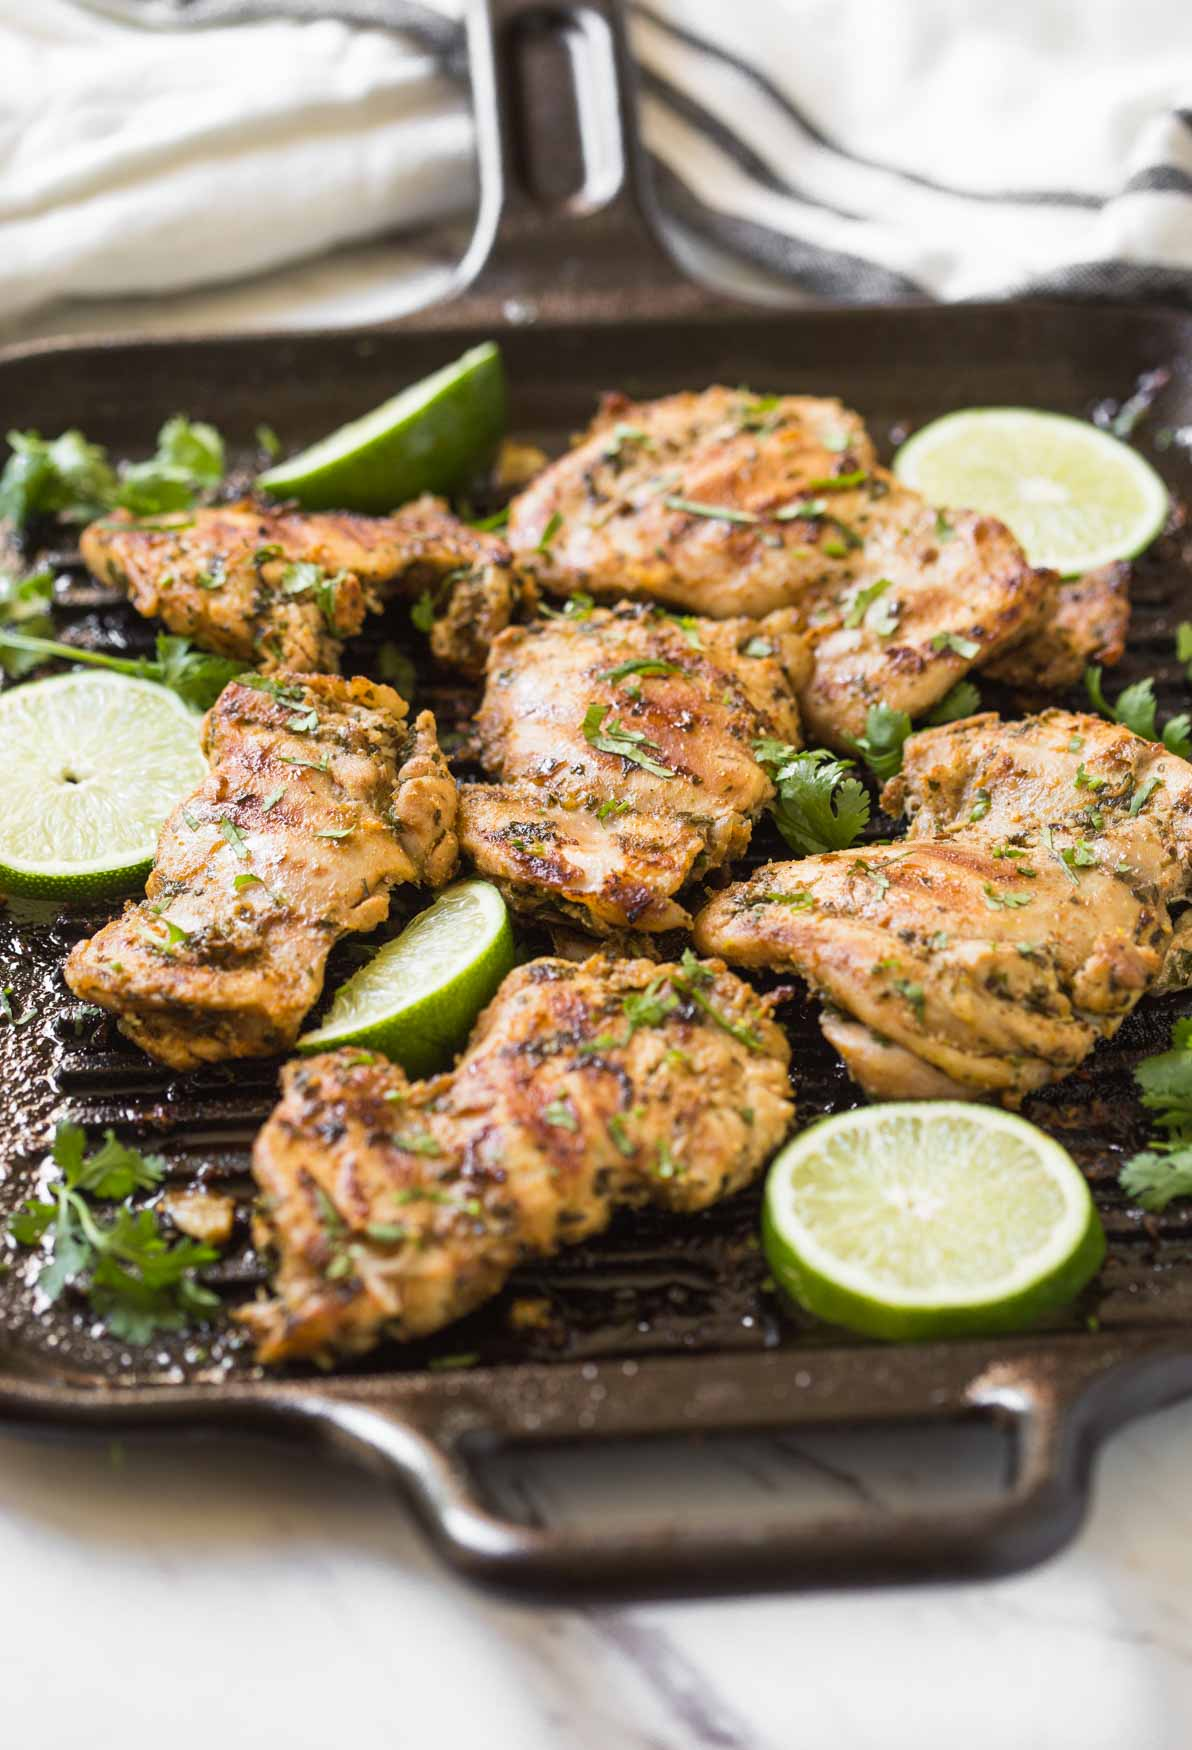 Prepare these cilantro lime grilled chicken thighs with delicious and healthy marinade. A quick and easy prep-ahead recipe perfect for a grilling party. Or just cook marinated chicken on the grill or frying pan for the weeknight dinner. | #watchwhatueat #grilledchicken #cilantrolime #grilling #chickenthighs